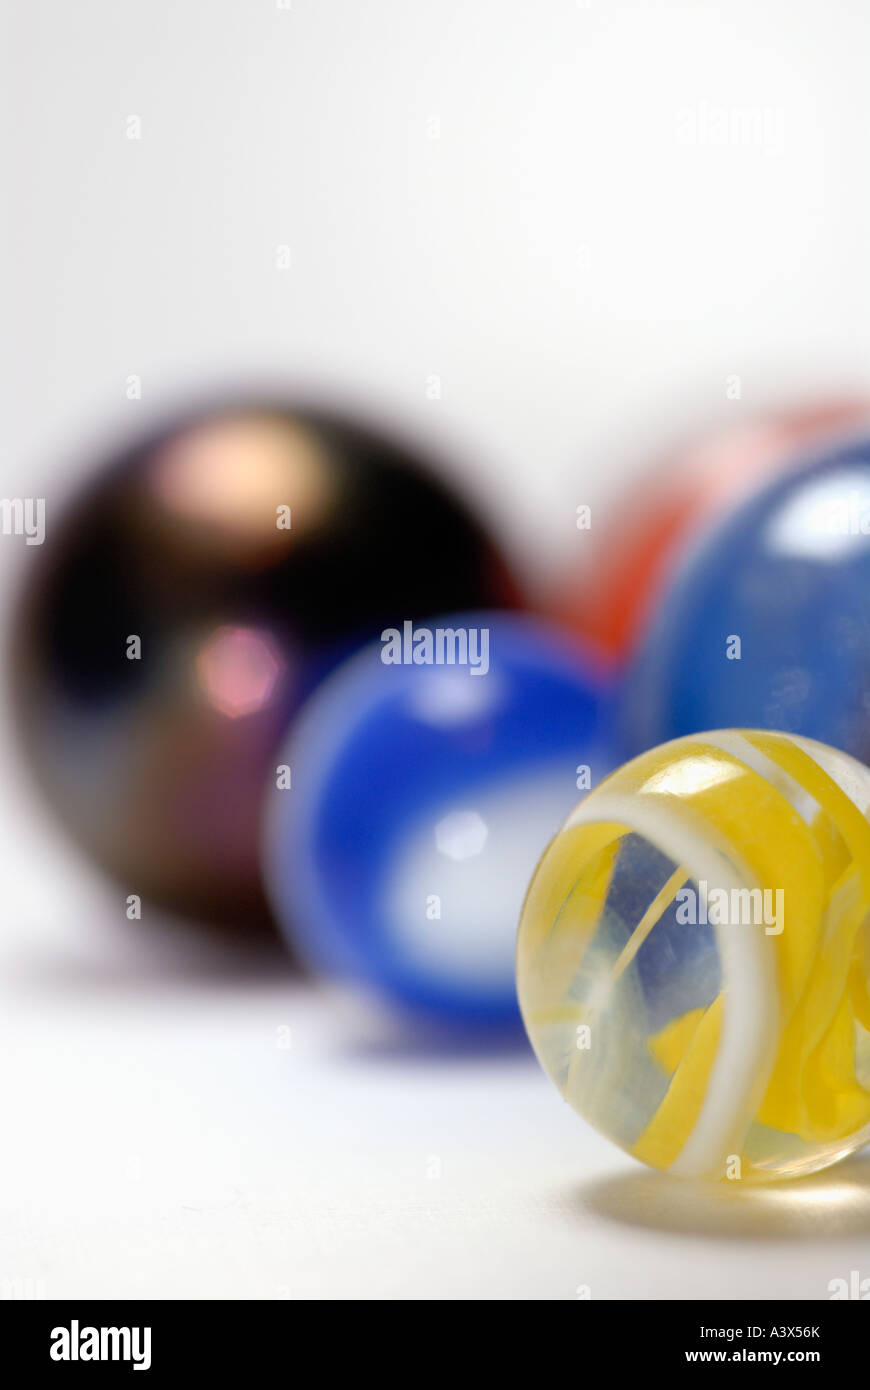 Closeup of marbles on a white surface Stock Photo